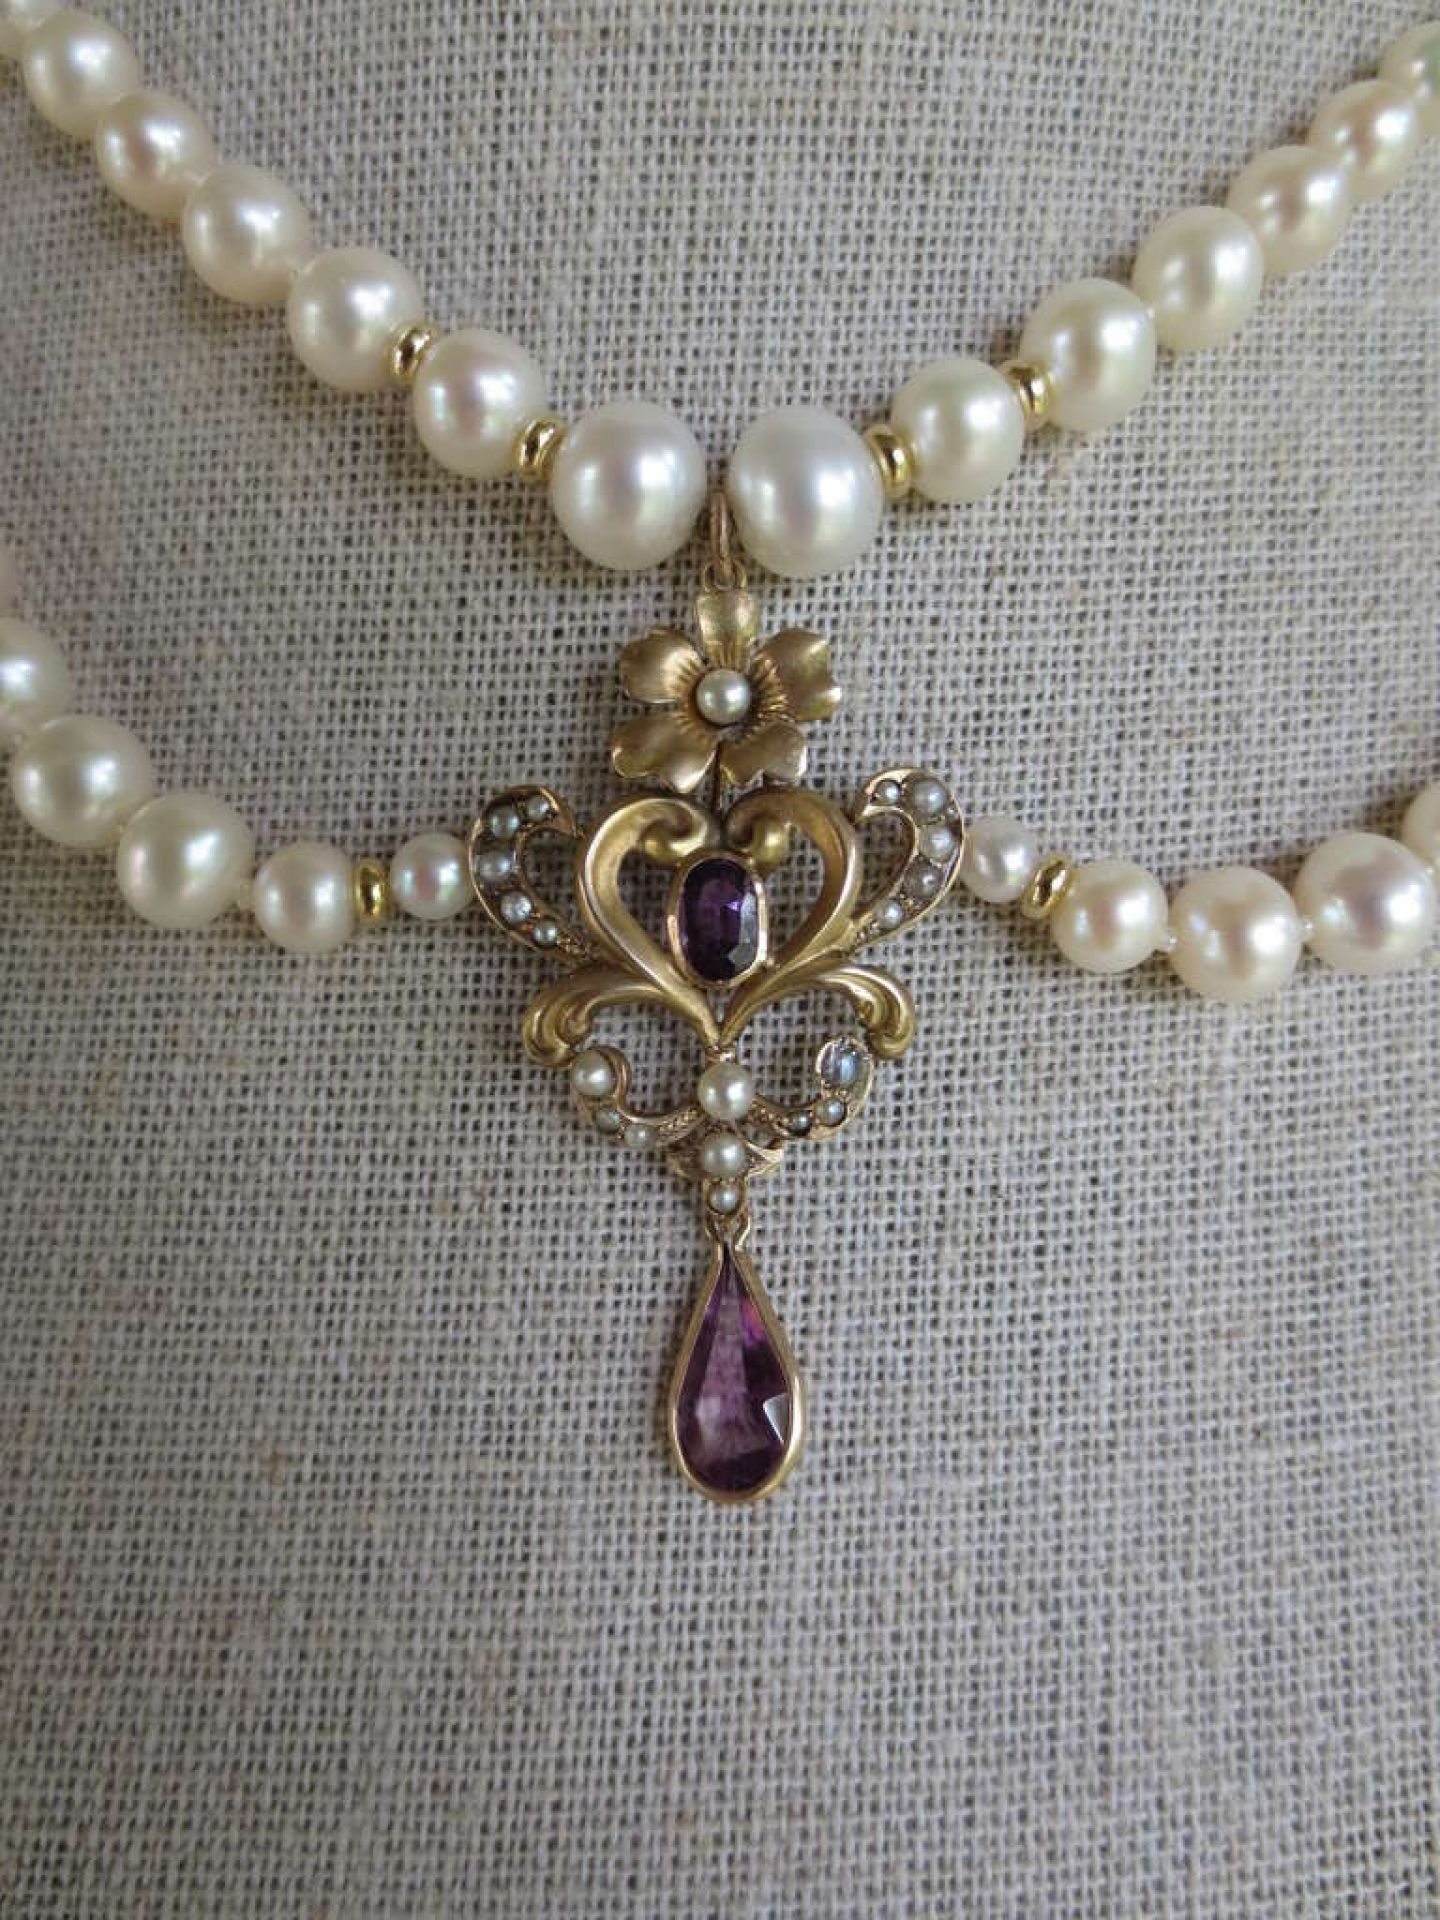 Pearl Draped Necklace with Vintage Amethyst Gold Centerpiece and 14 k Gold Clasp